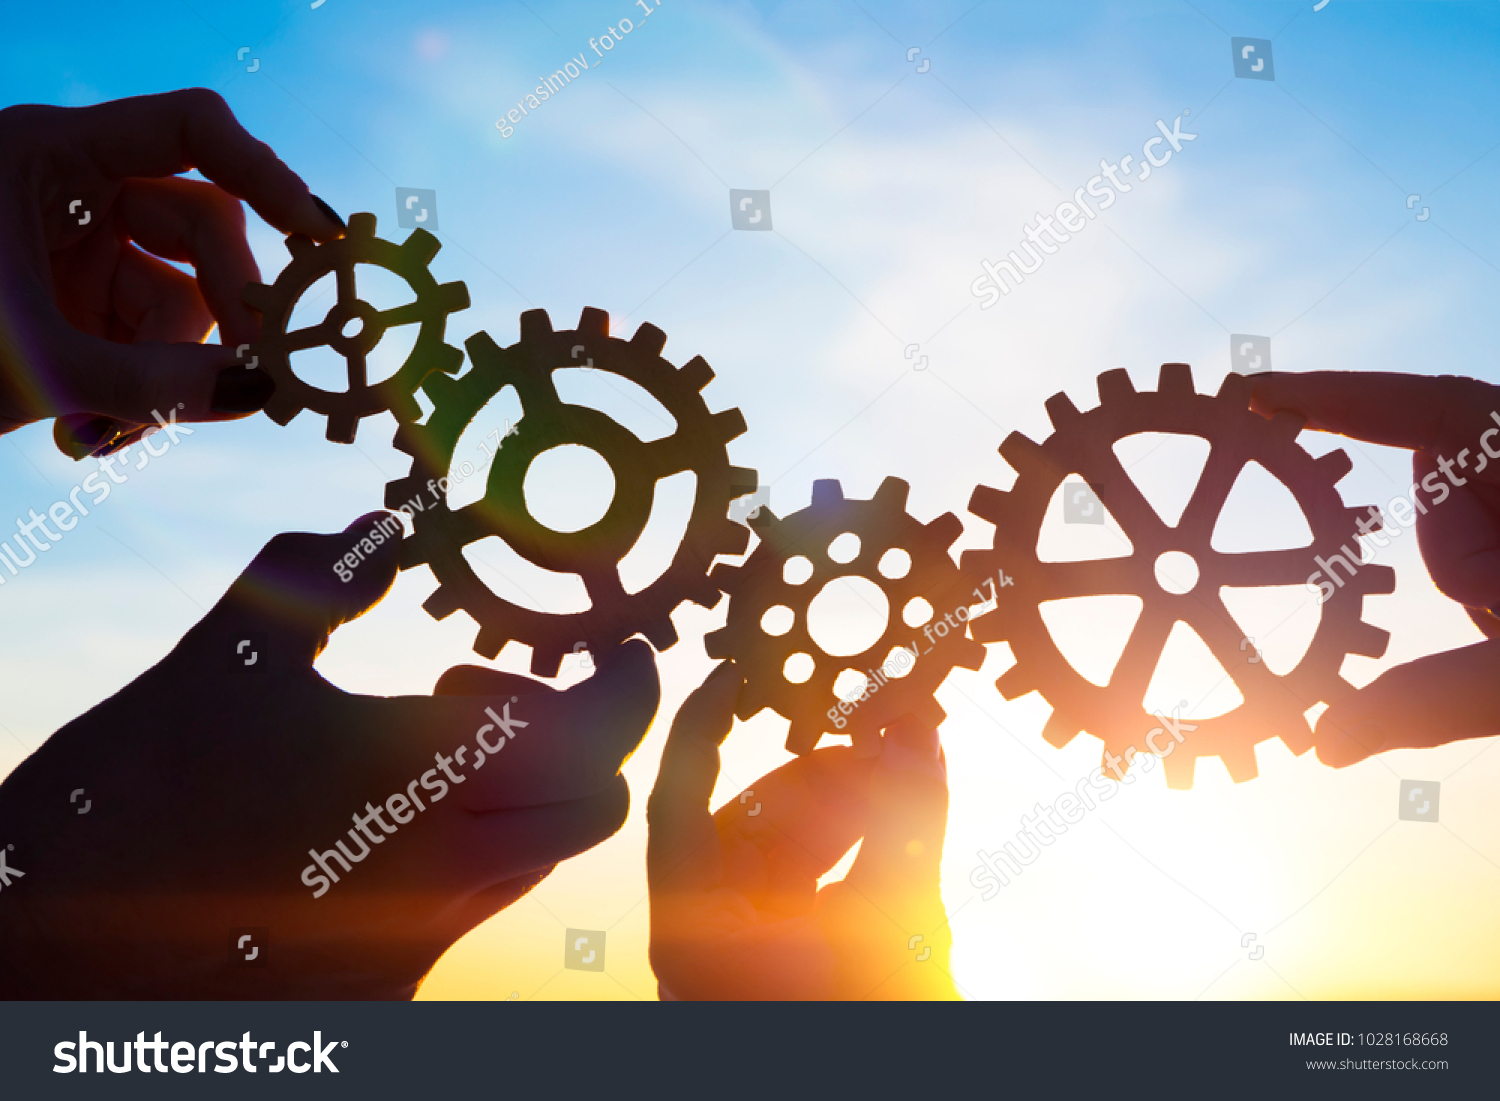 Four hands of businessmen collect gear from the gears of the details of puzzles. against the background of sunlight. The concept of a business idea. Teamwork. strategy. cooperation #1028168668